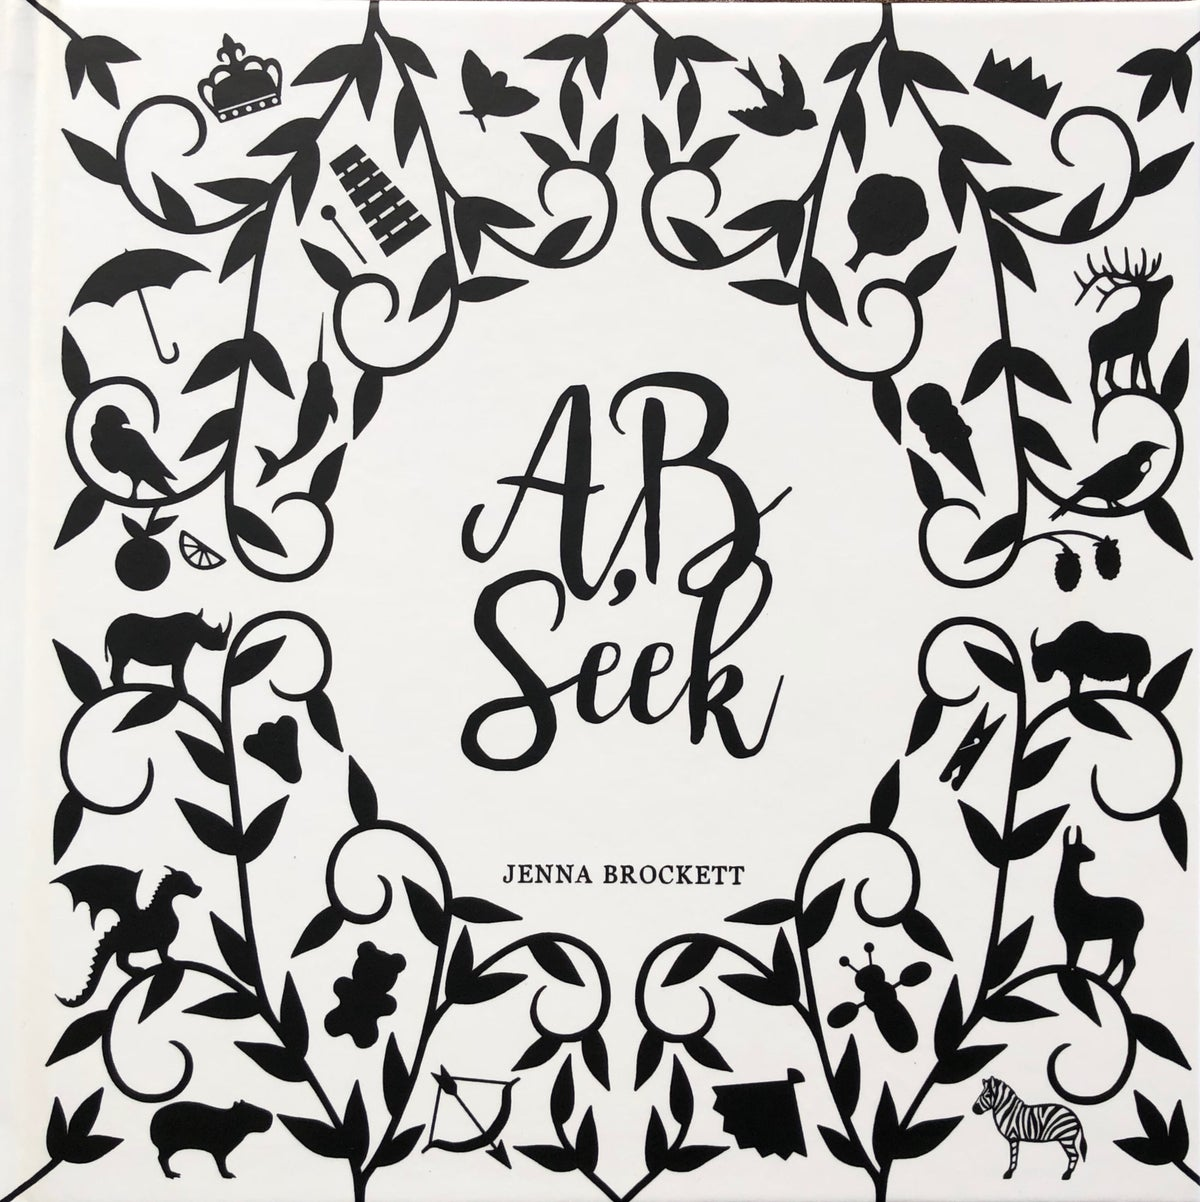 A B SEEK = Alphabet hide and seek